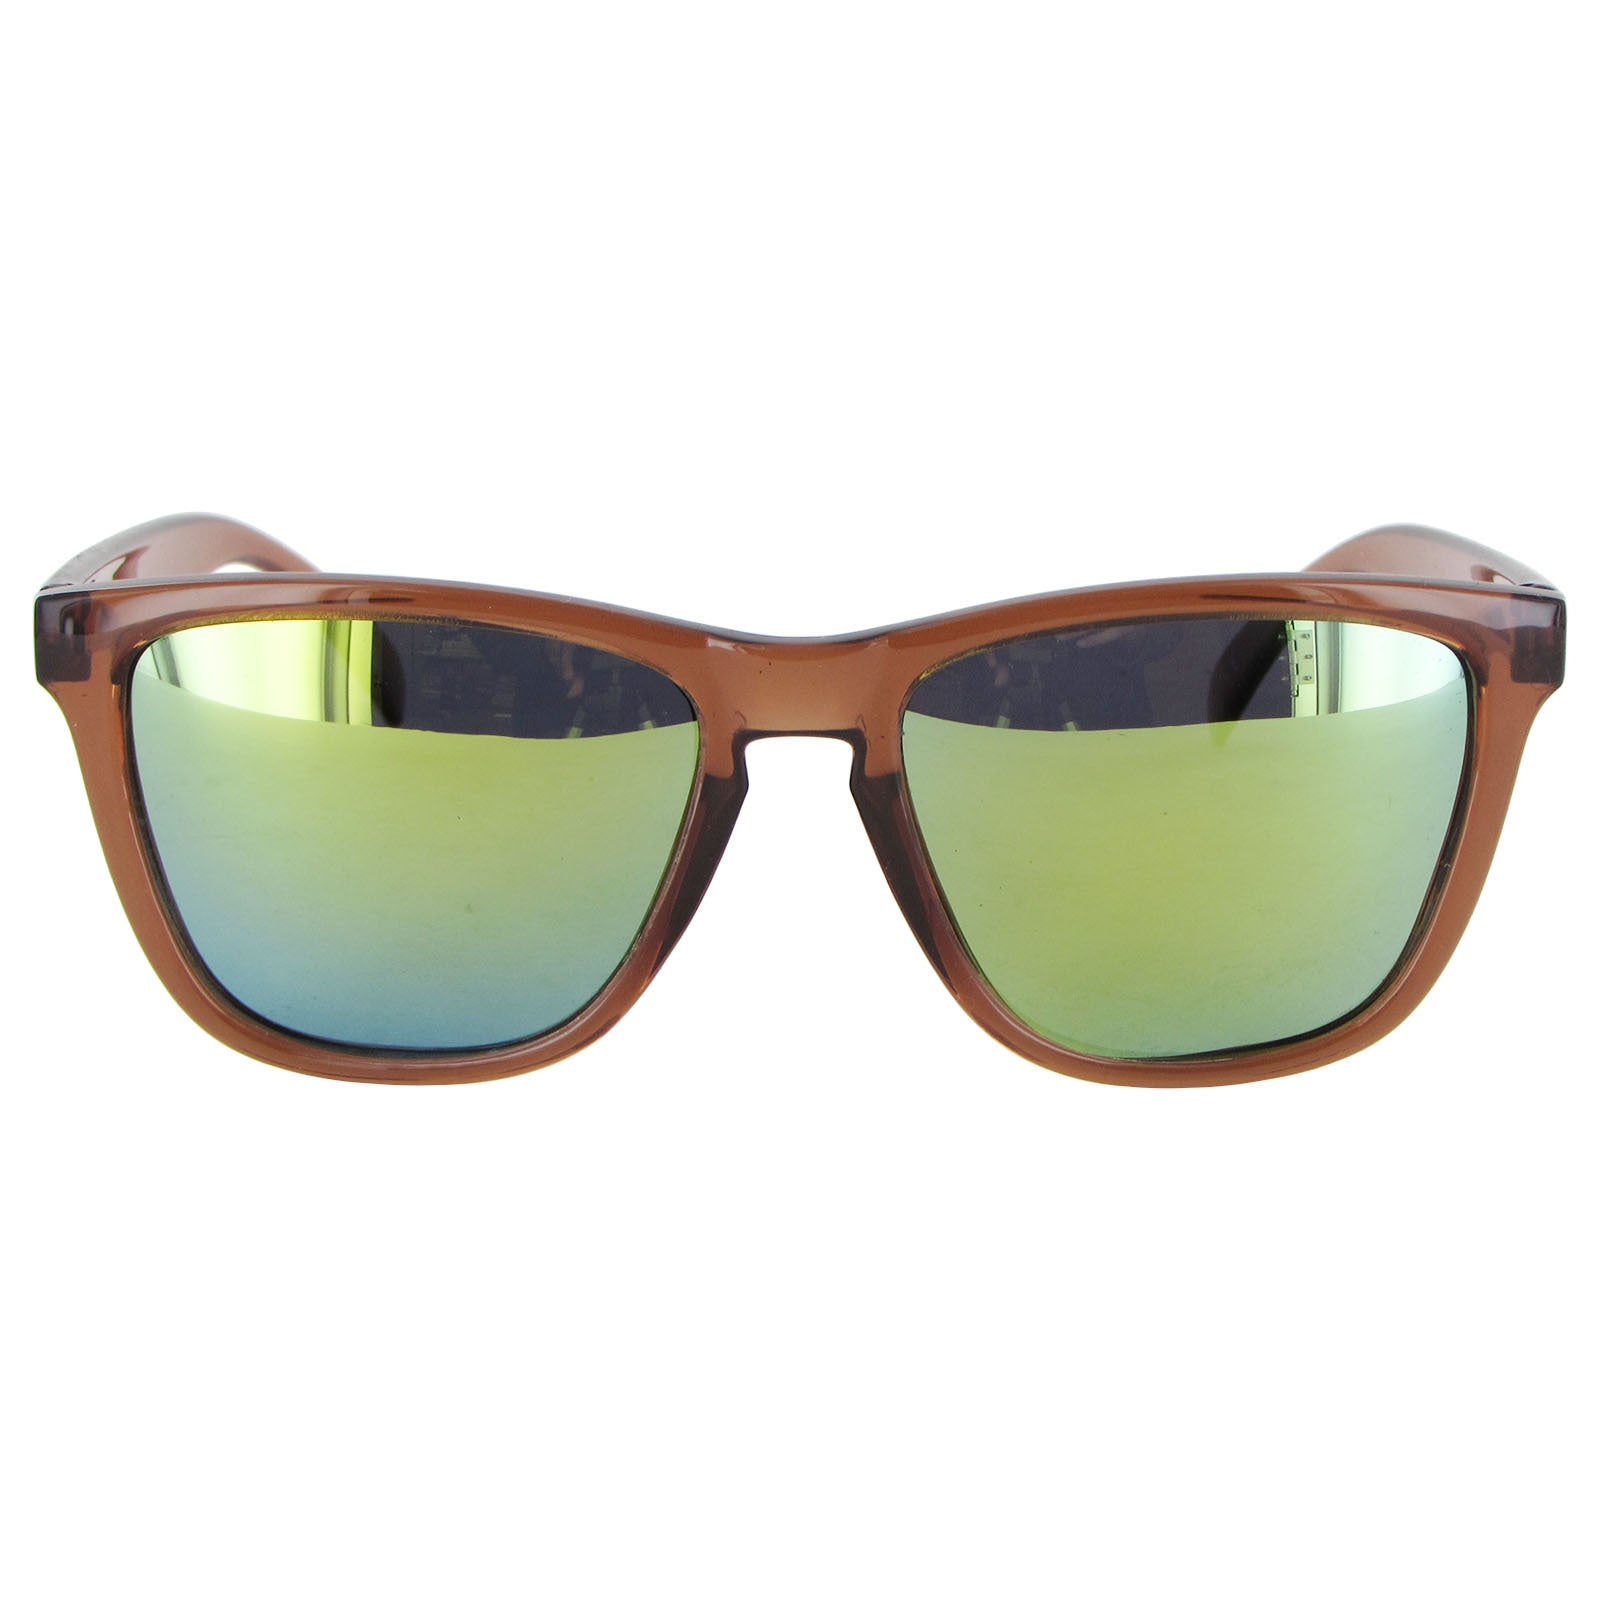 61353fb60 Shop Nectar Mens Breck Polarized Rectangular Sunglasses - Brown/Gold - Free  Shipping On Orders Over $45 - Overstock - 13982771